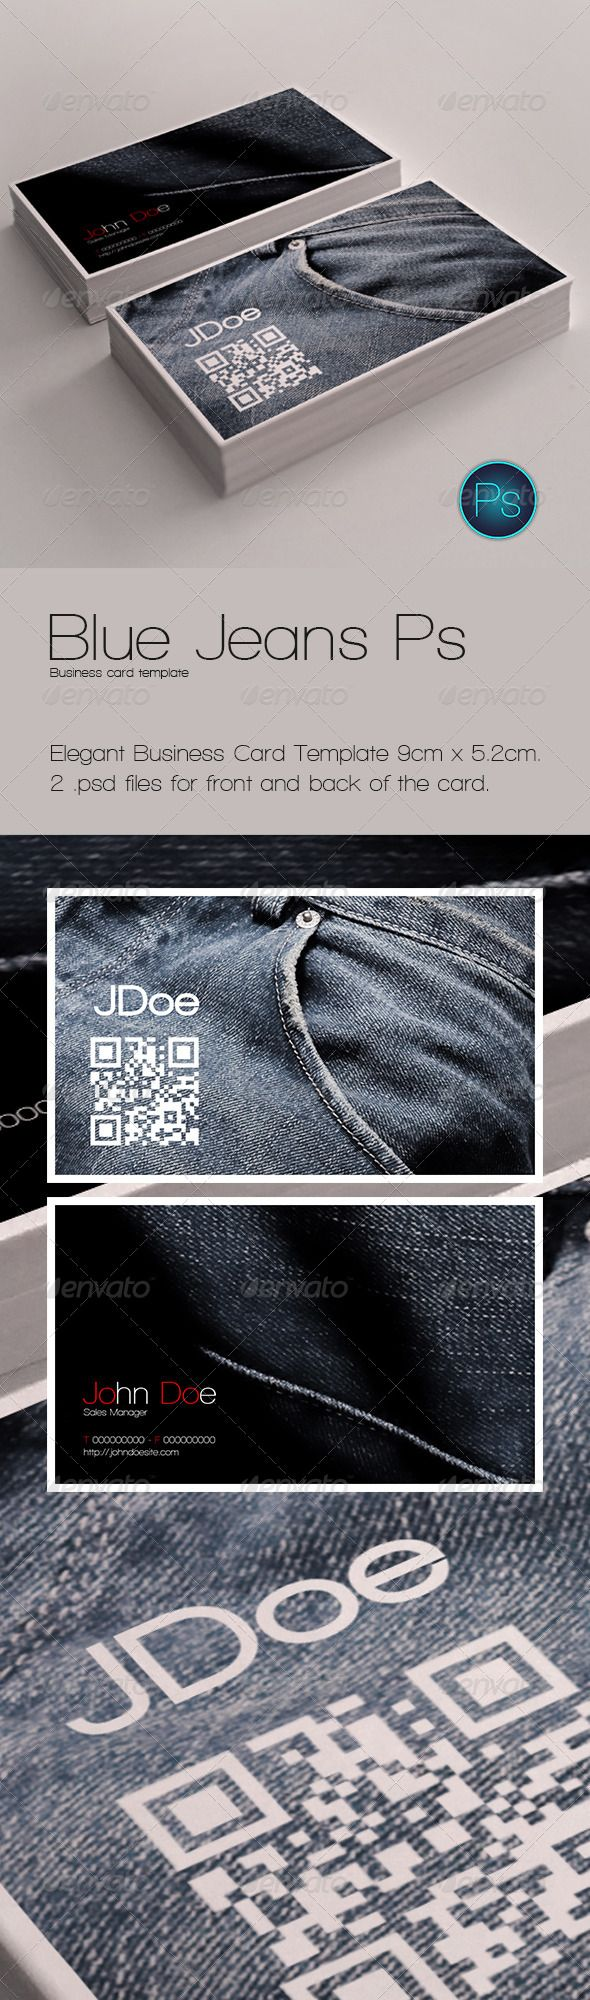 Blue Jeans Ps - Business Card Template